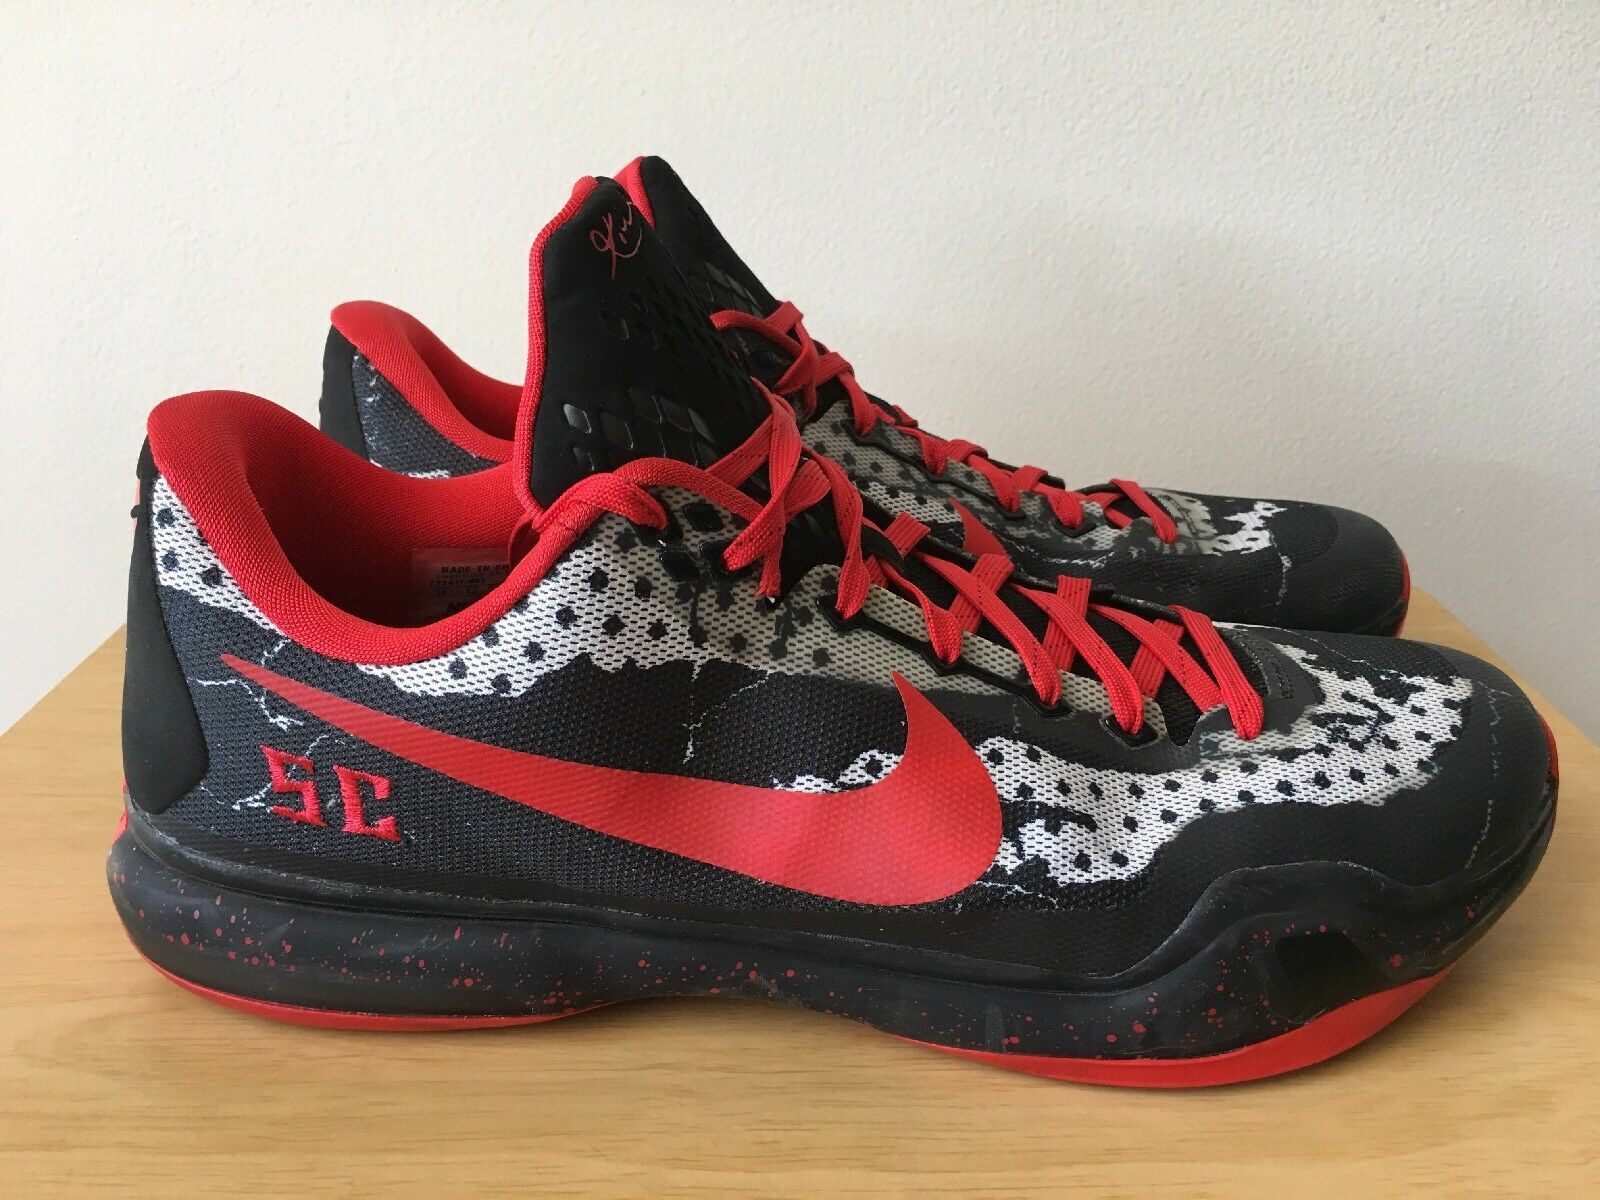 KOBE BRYANT NIKE ID USC TROJANS FIGHT ON Black Red shoes Sneakers Size 15